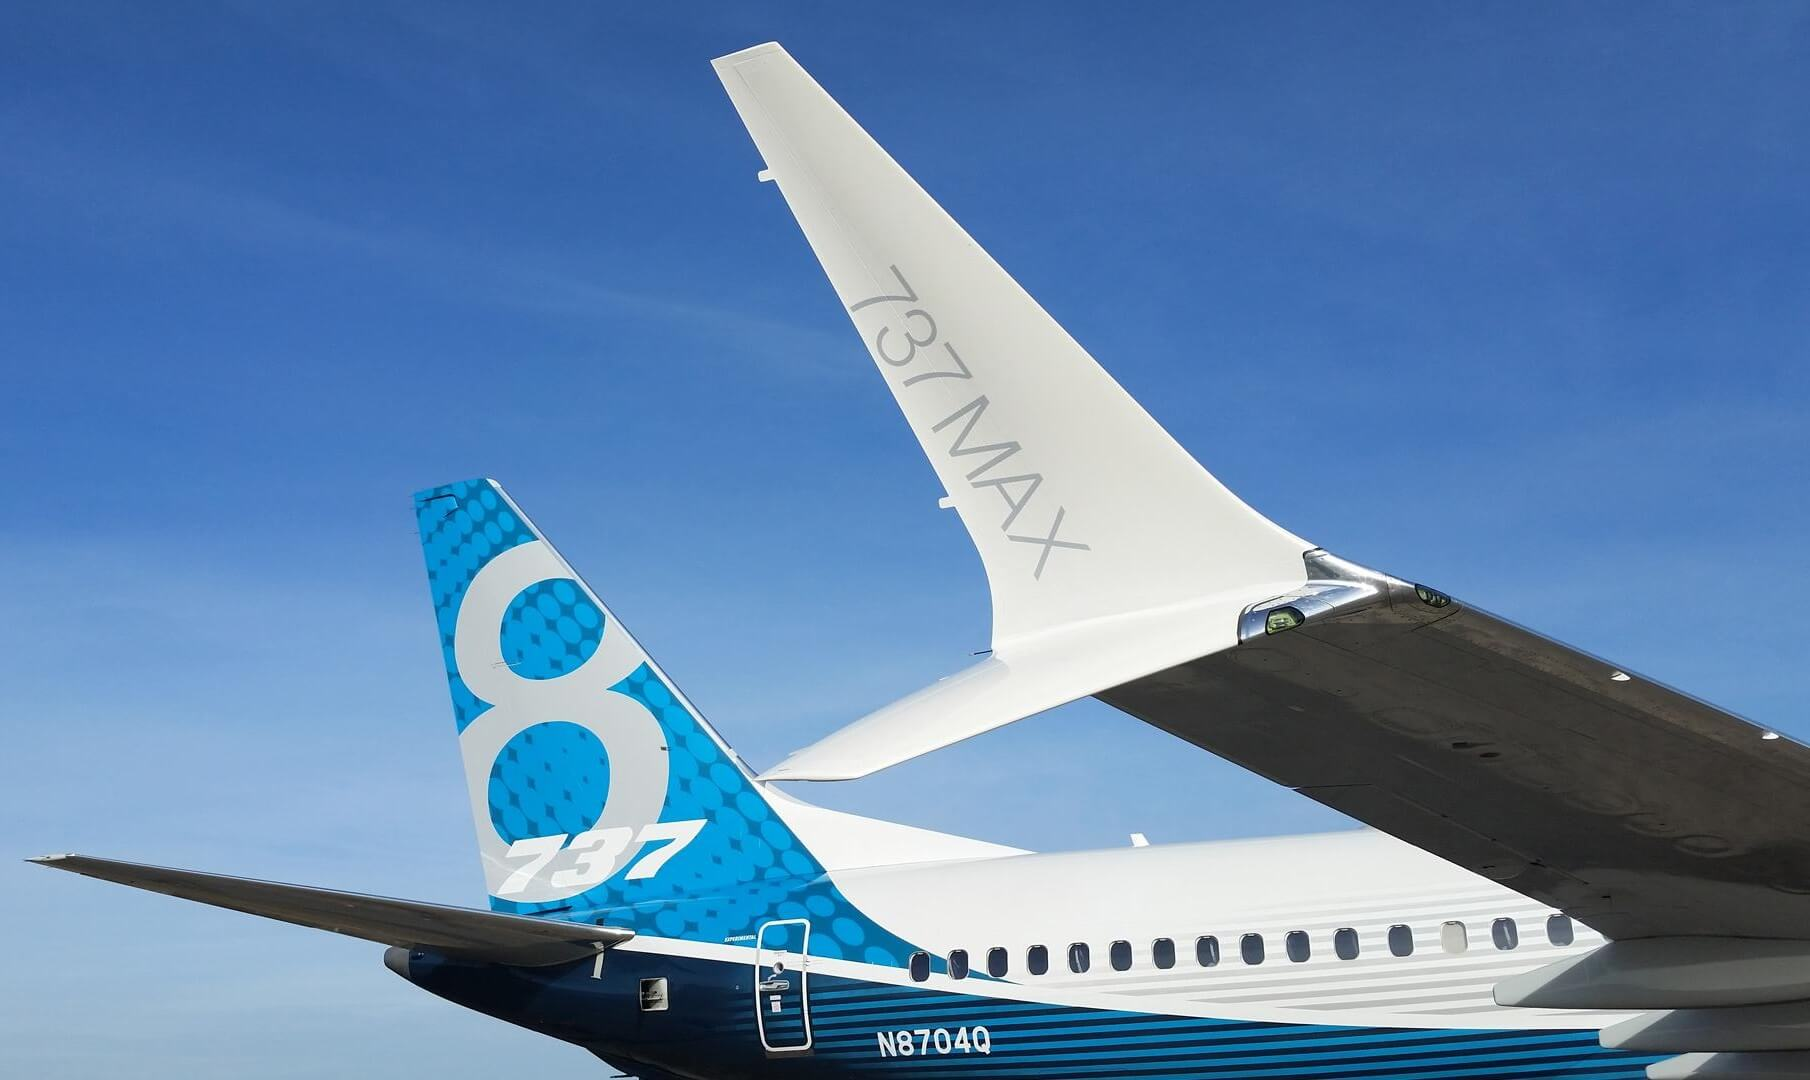 Boeing: Ungrounding of 737 MAX will begin in mid-2020